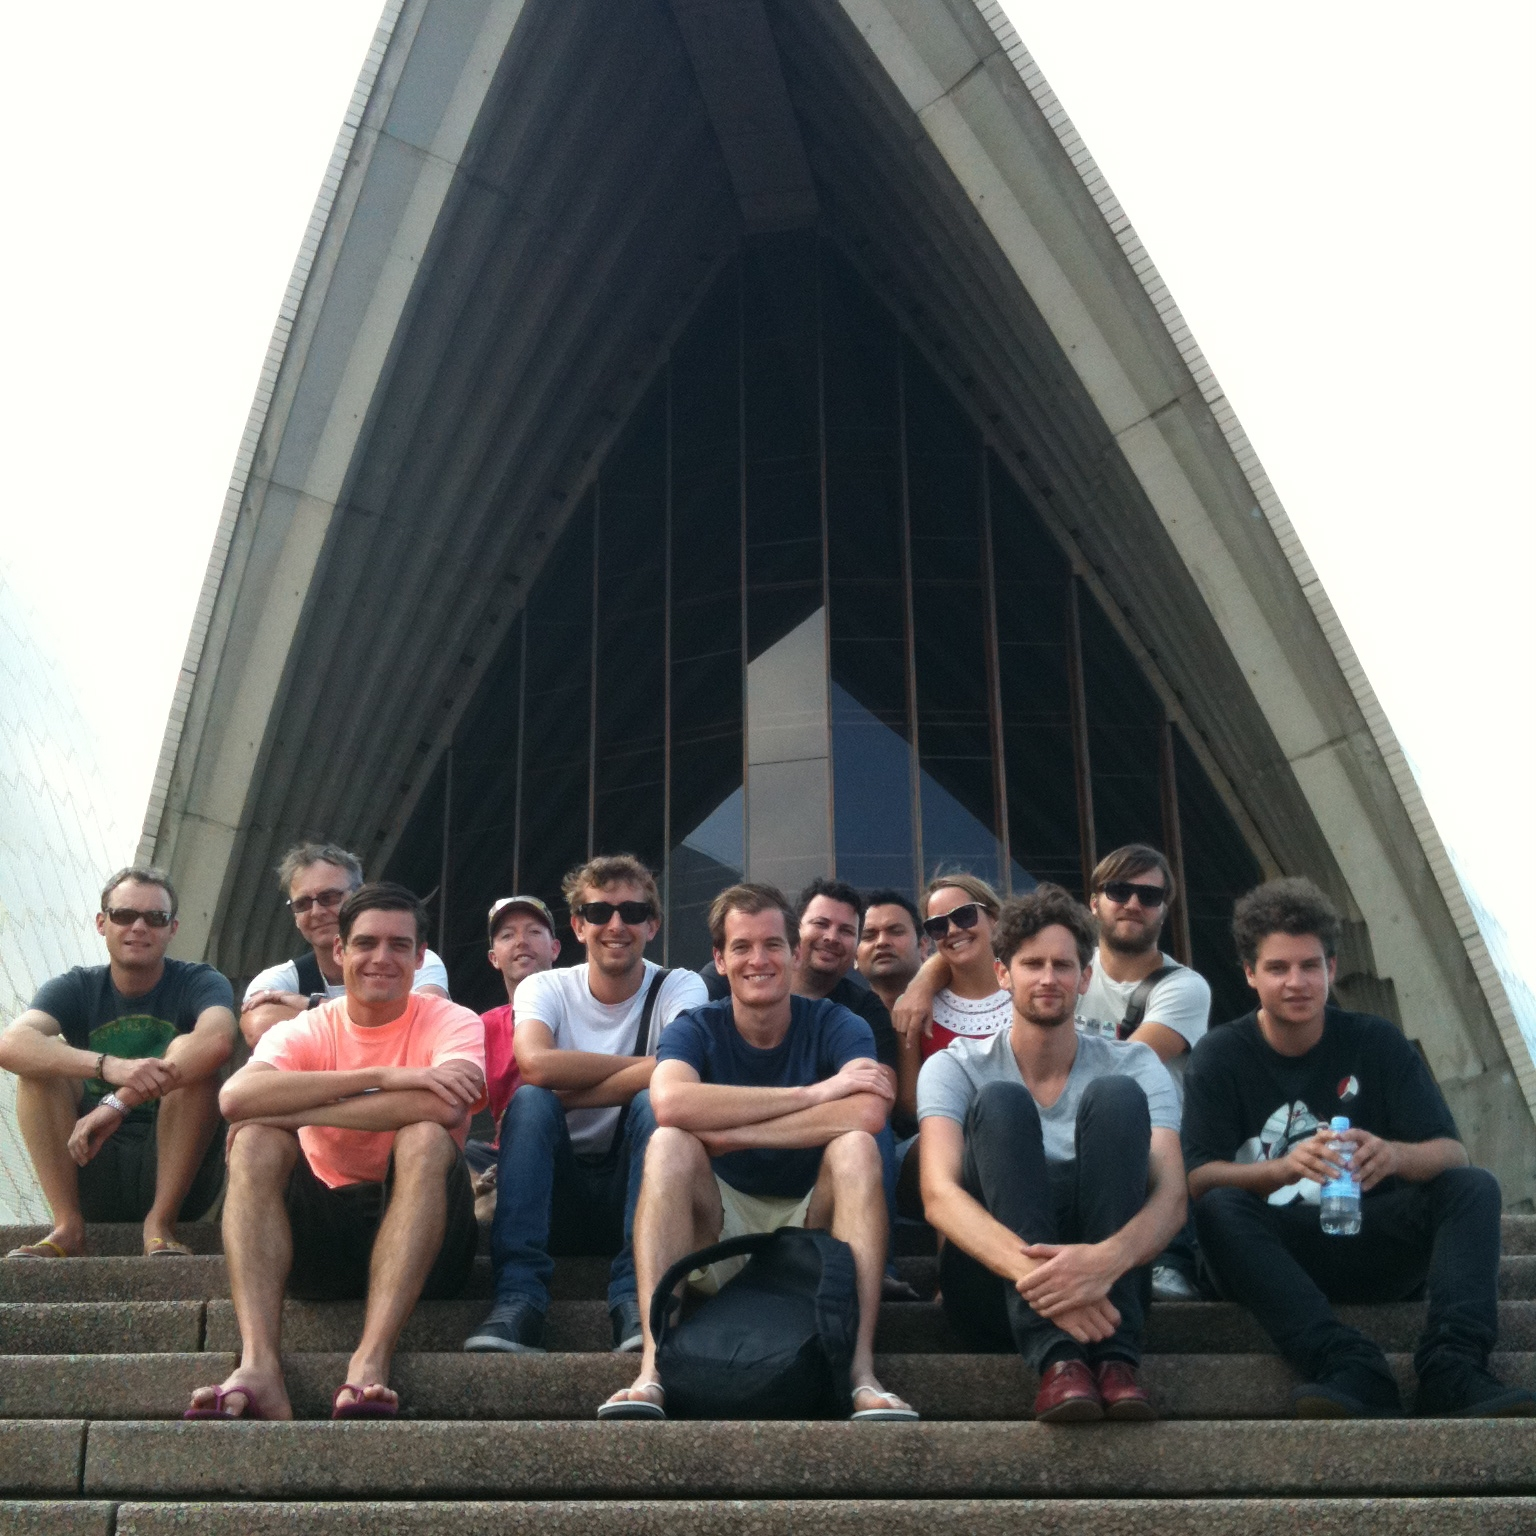 SYDNEY OPERA HOUSE (2010) - Sydney, Australia | 18 Shows